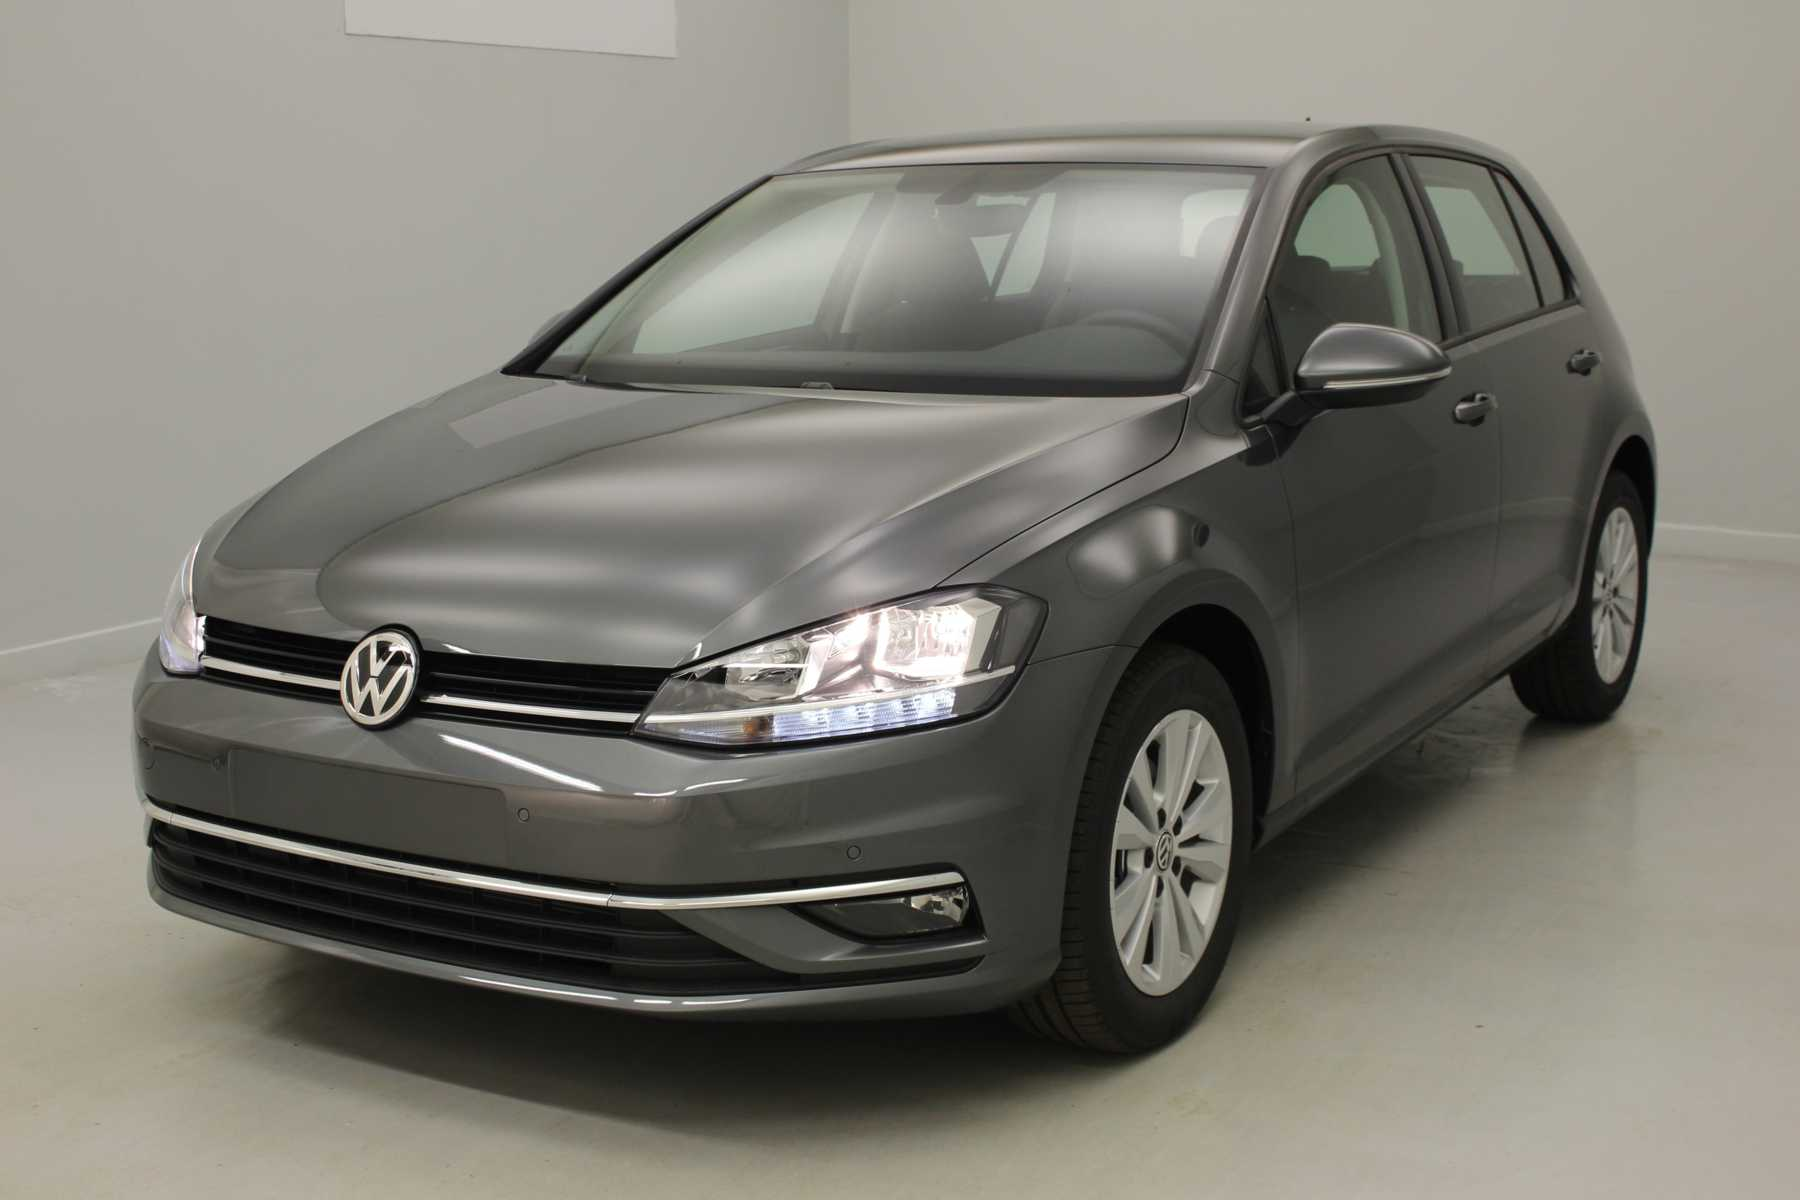 VOLKSWAGEN Golf Nouvelle 1.6 TDI 115 BlueMotion Technology FAP Trendline Gris Indium + GPS + Climatisation automatique avec options